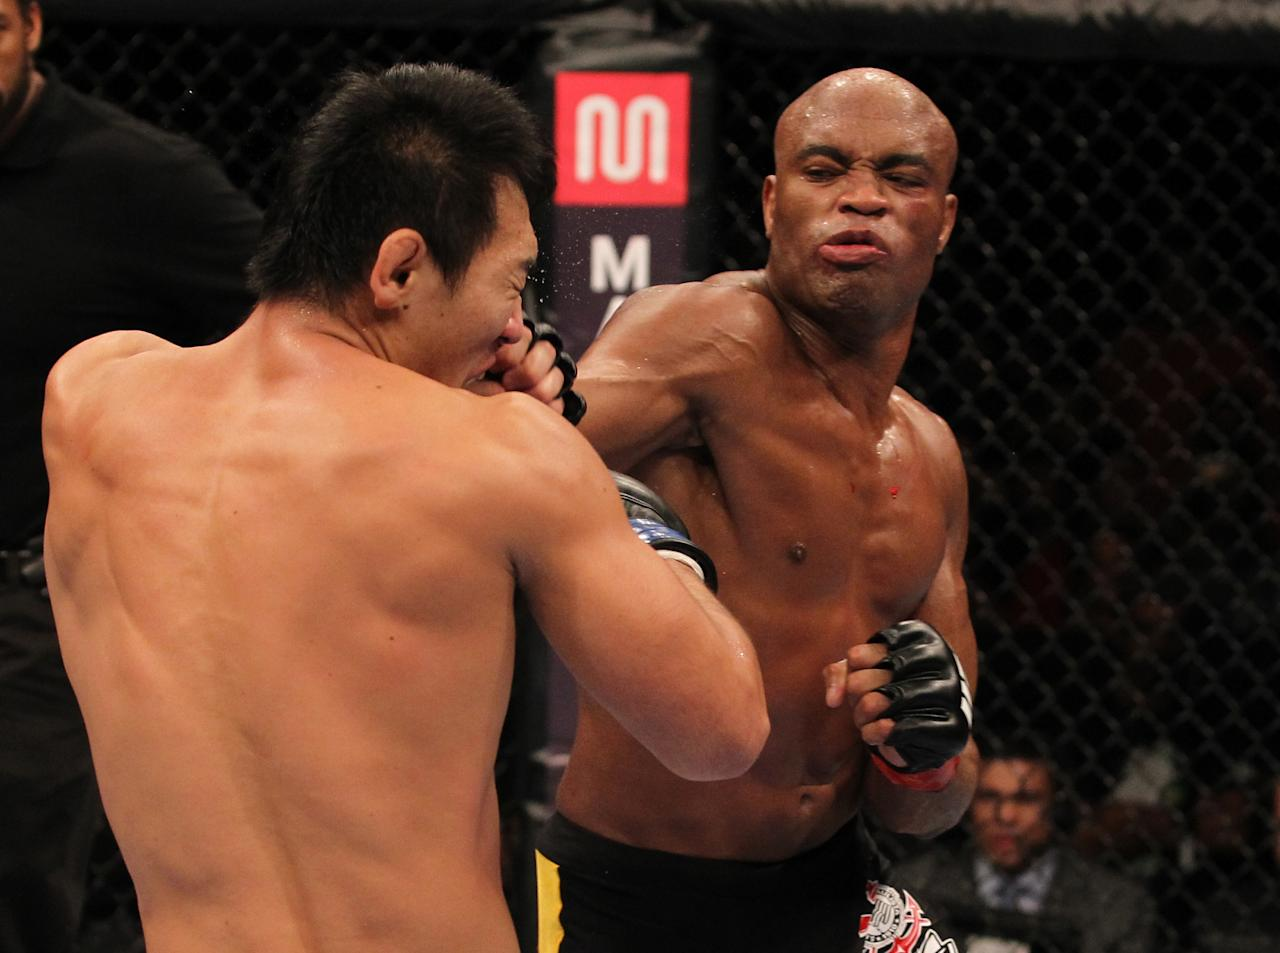 RIO DE JANEIRO, BRAZIL - AUGUST 27: (R-L) Anderson Silva punches Yushin Okami during the UFC Middleweight Championship bout at UFC 134 at HSBC Arena on August 27, 2011 in Rio de Janeiro, Brazil. (Photo by Al Bello/Zuffa LLC/[Zuffa LLC via Getty Images)